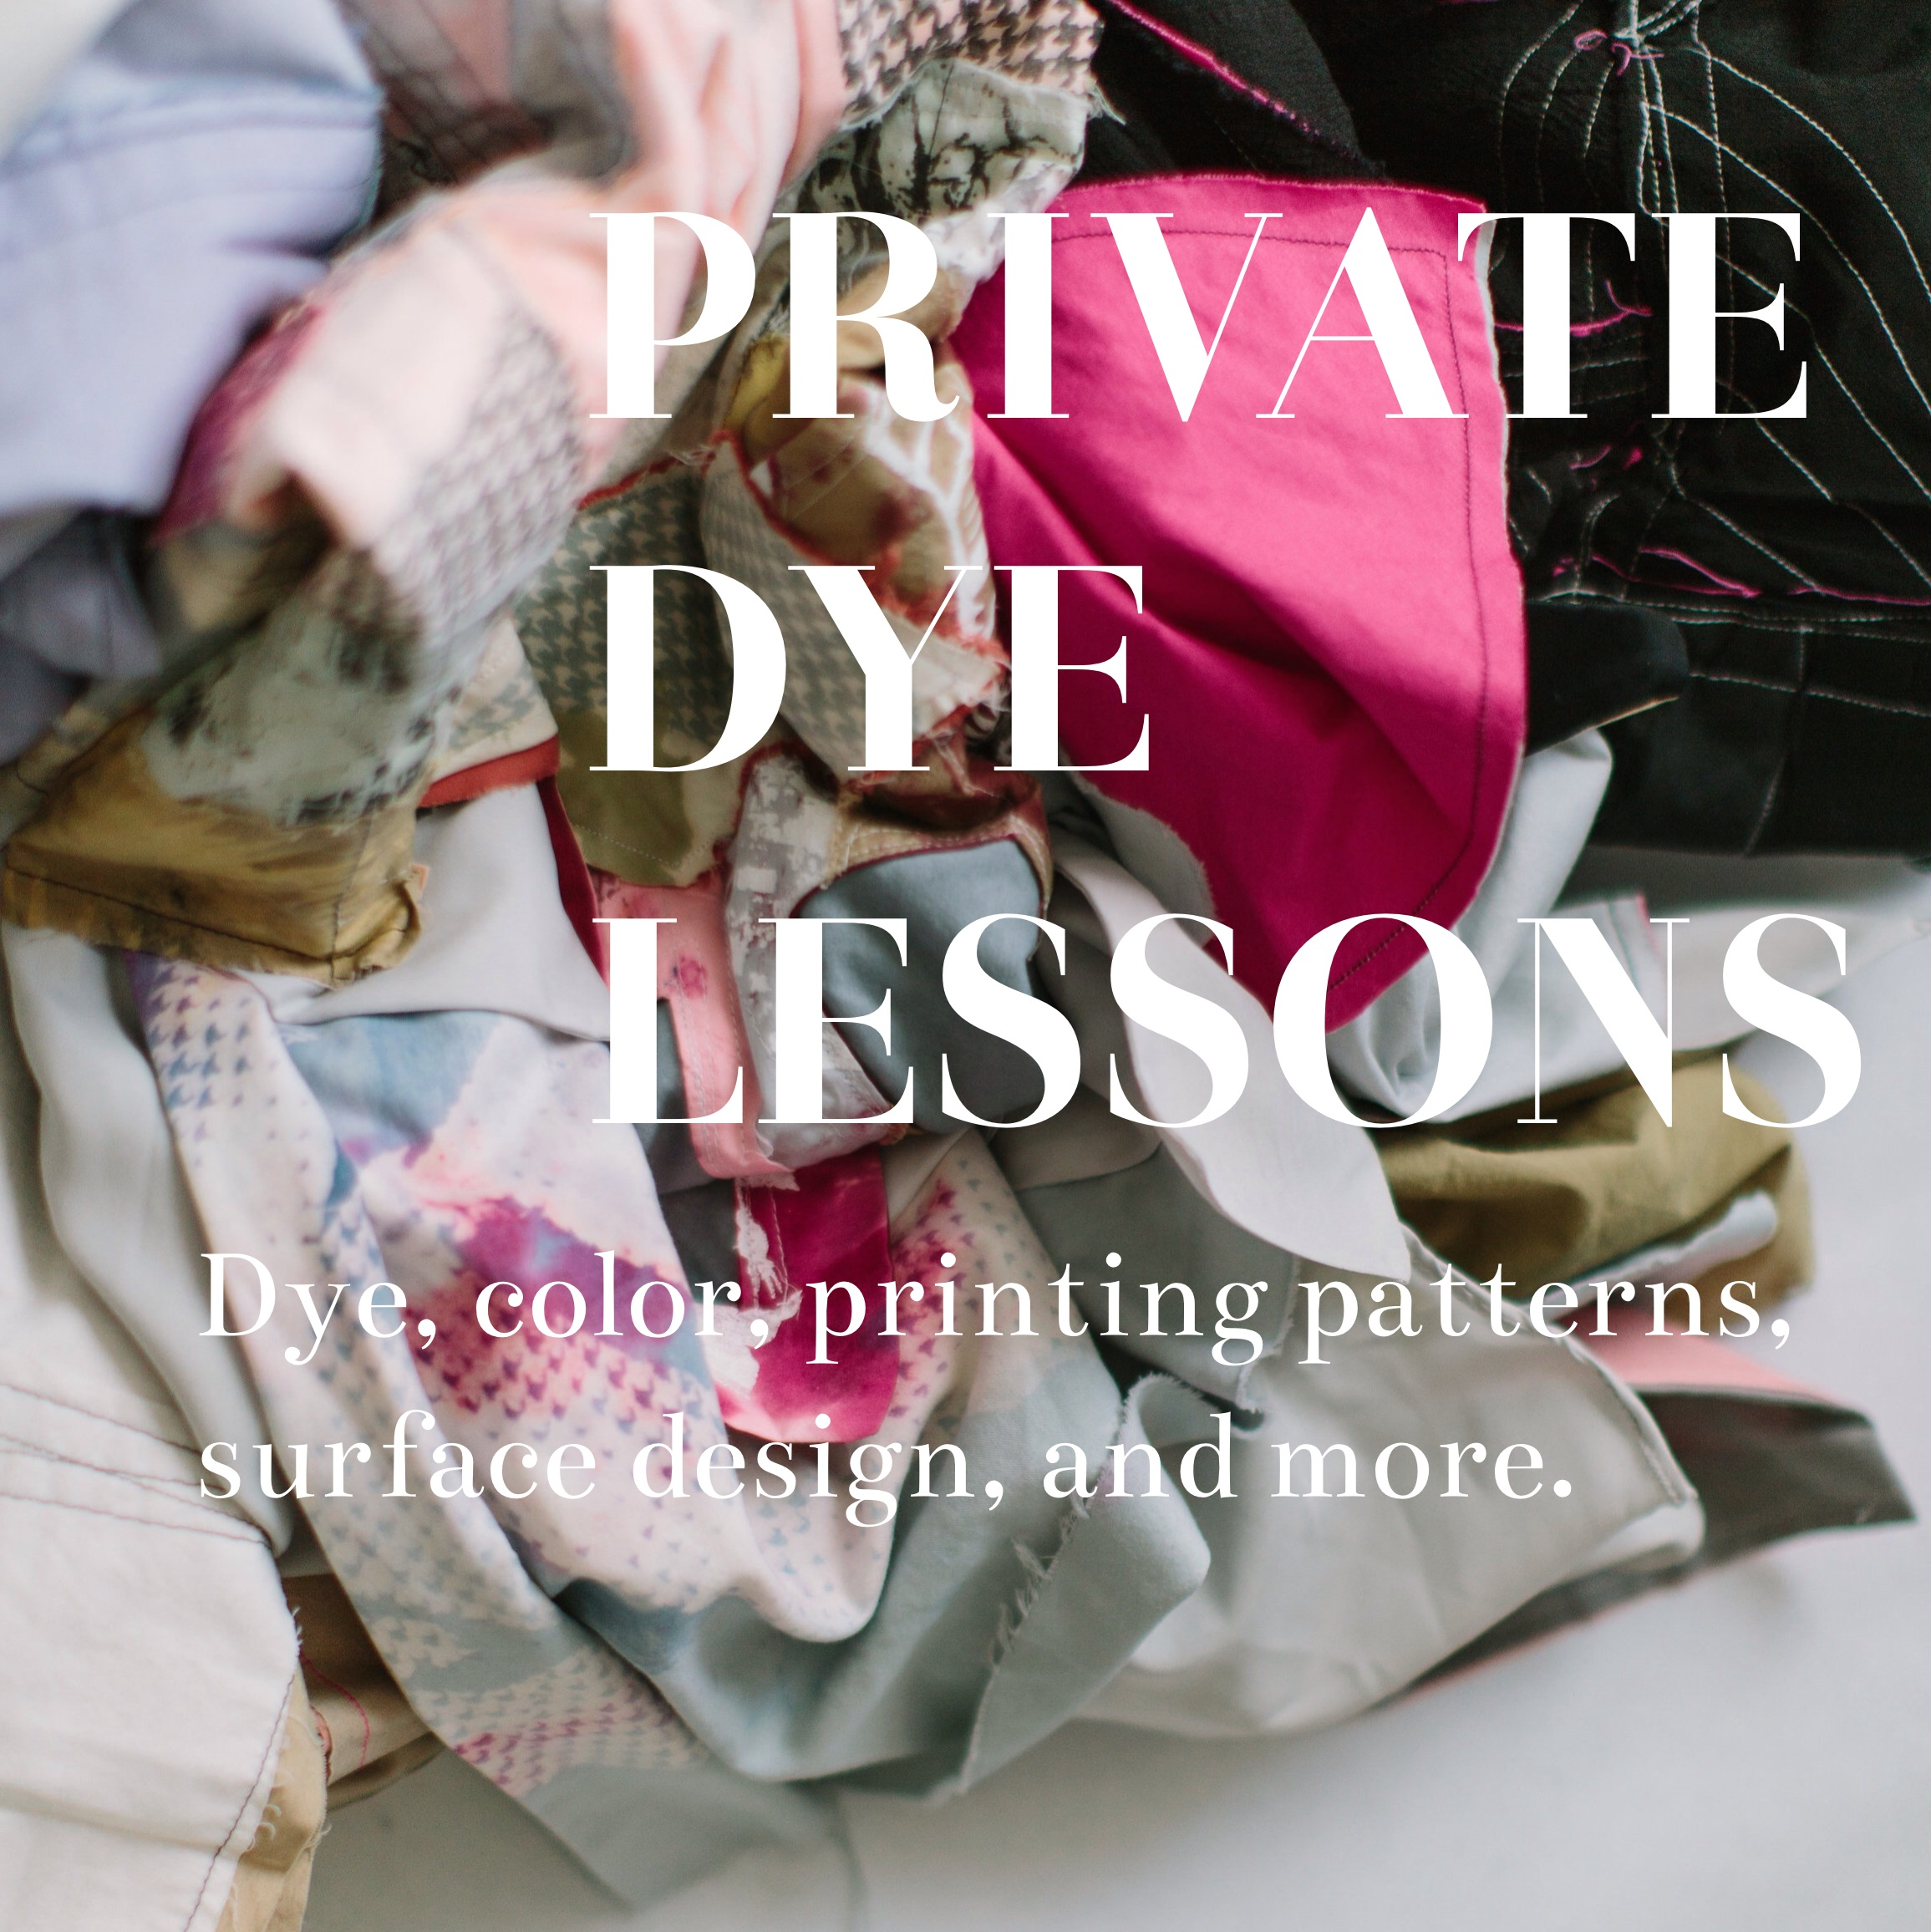 PRIVATE DYE LESSONS